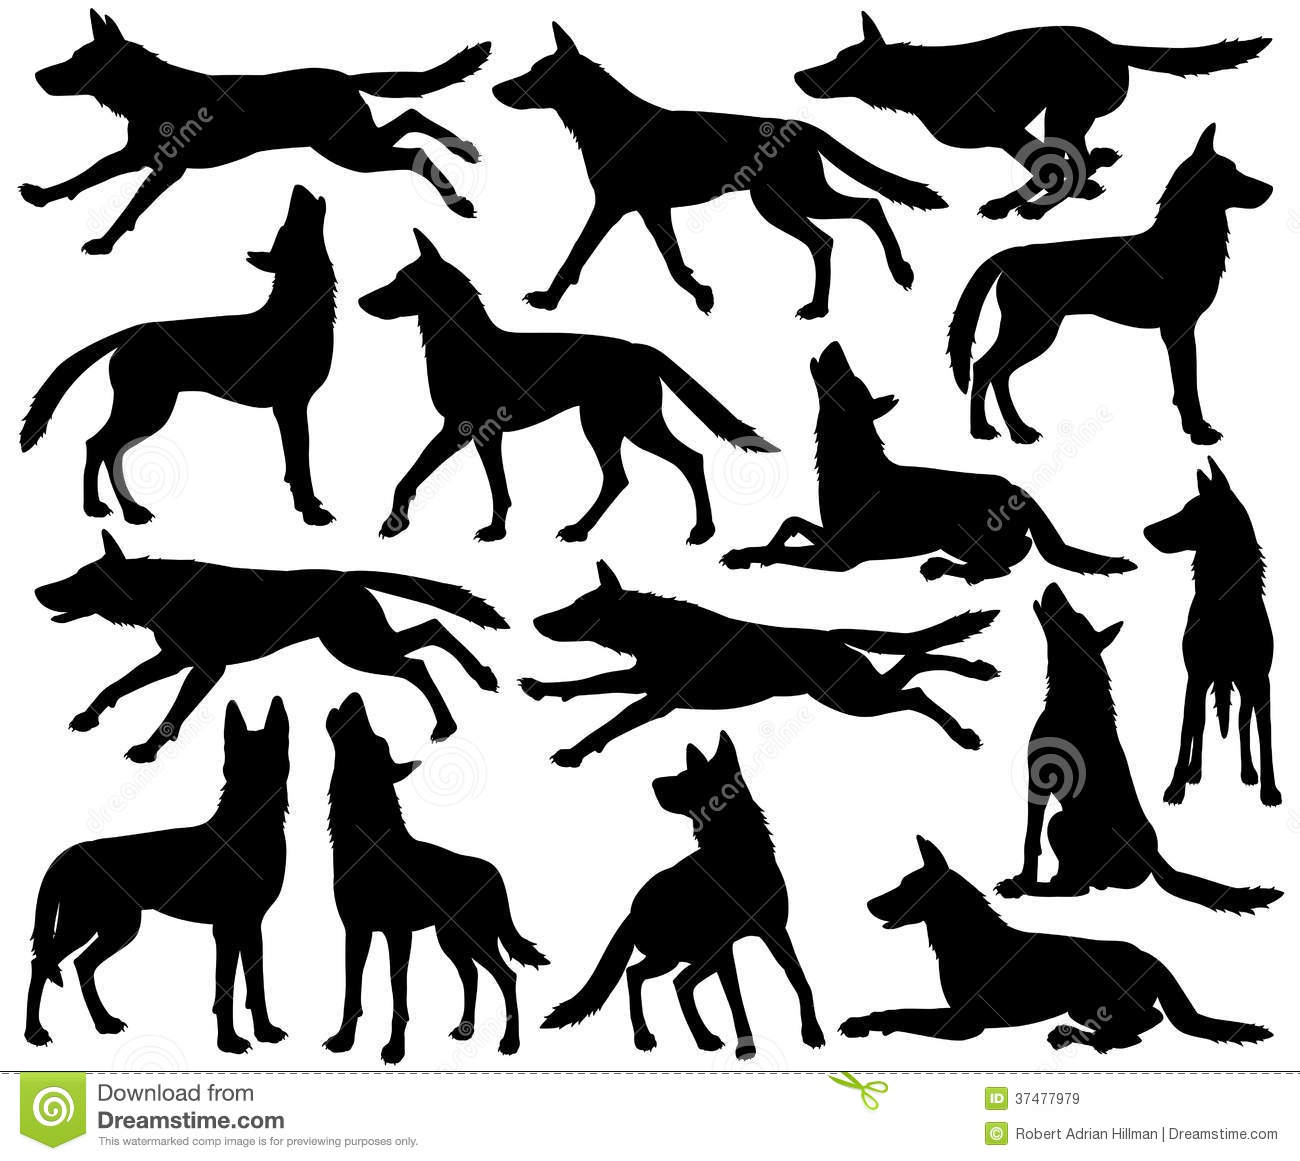 Set of editable vector silhouettes of wolves in different poses.